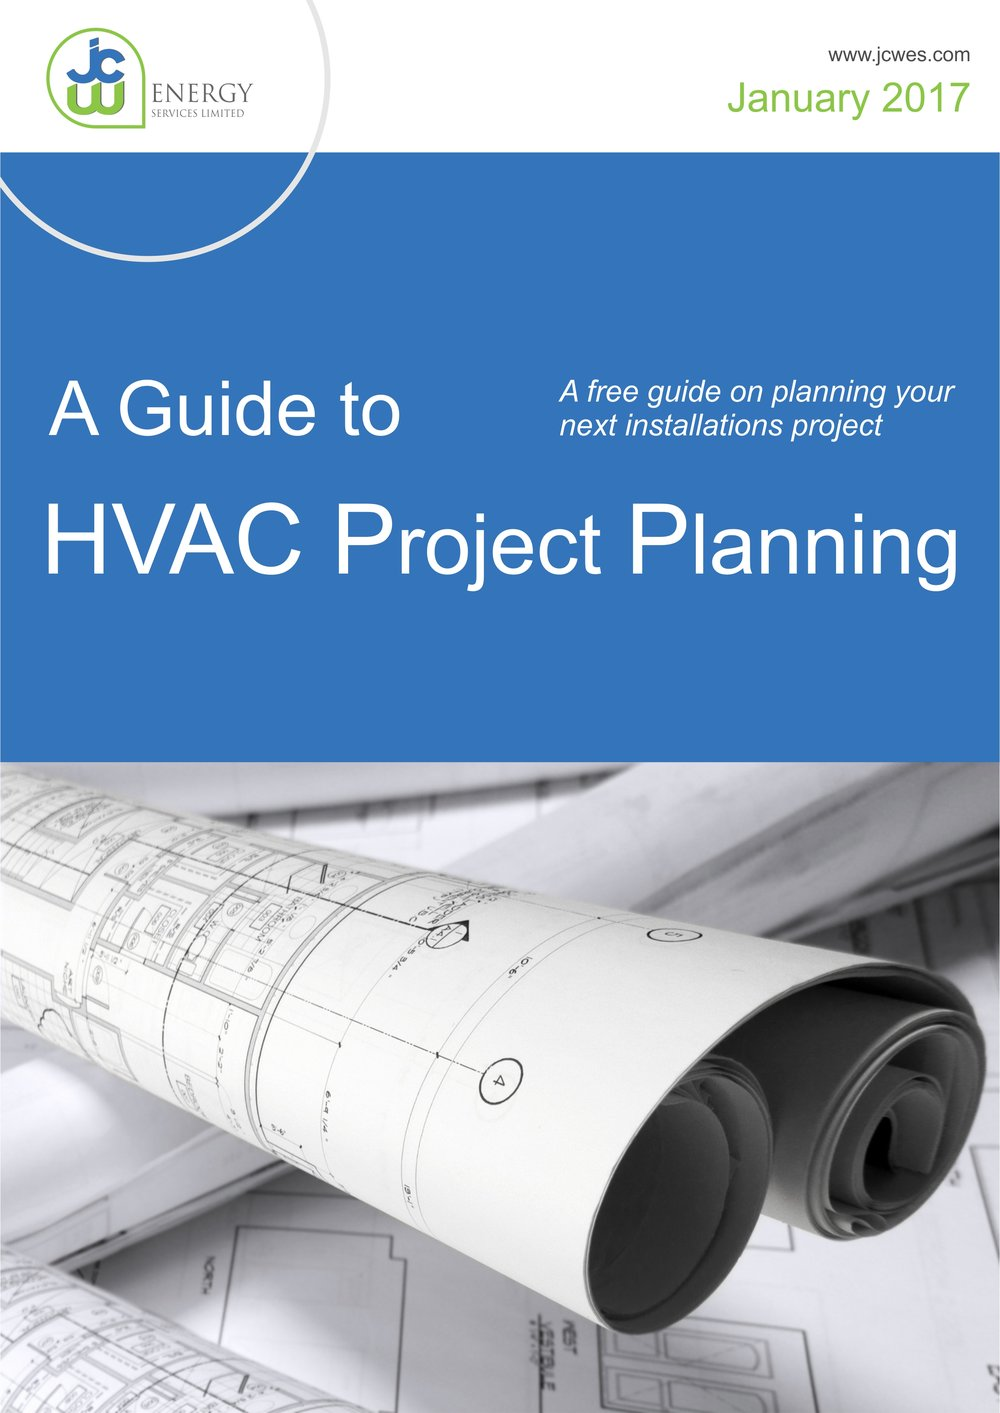 A Guide to HVAC Project Planning